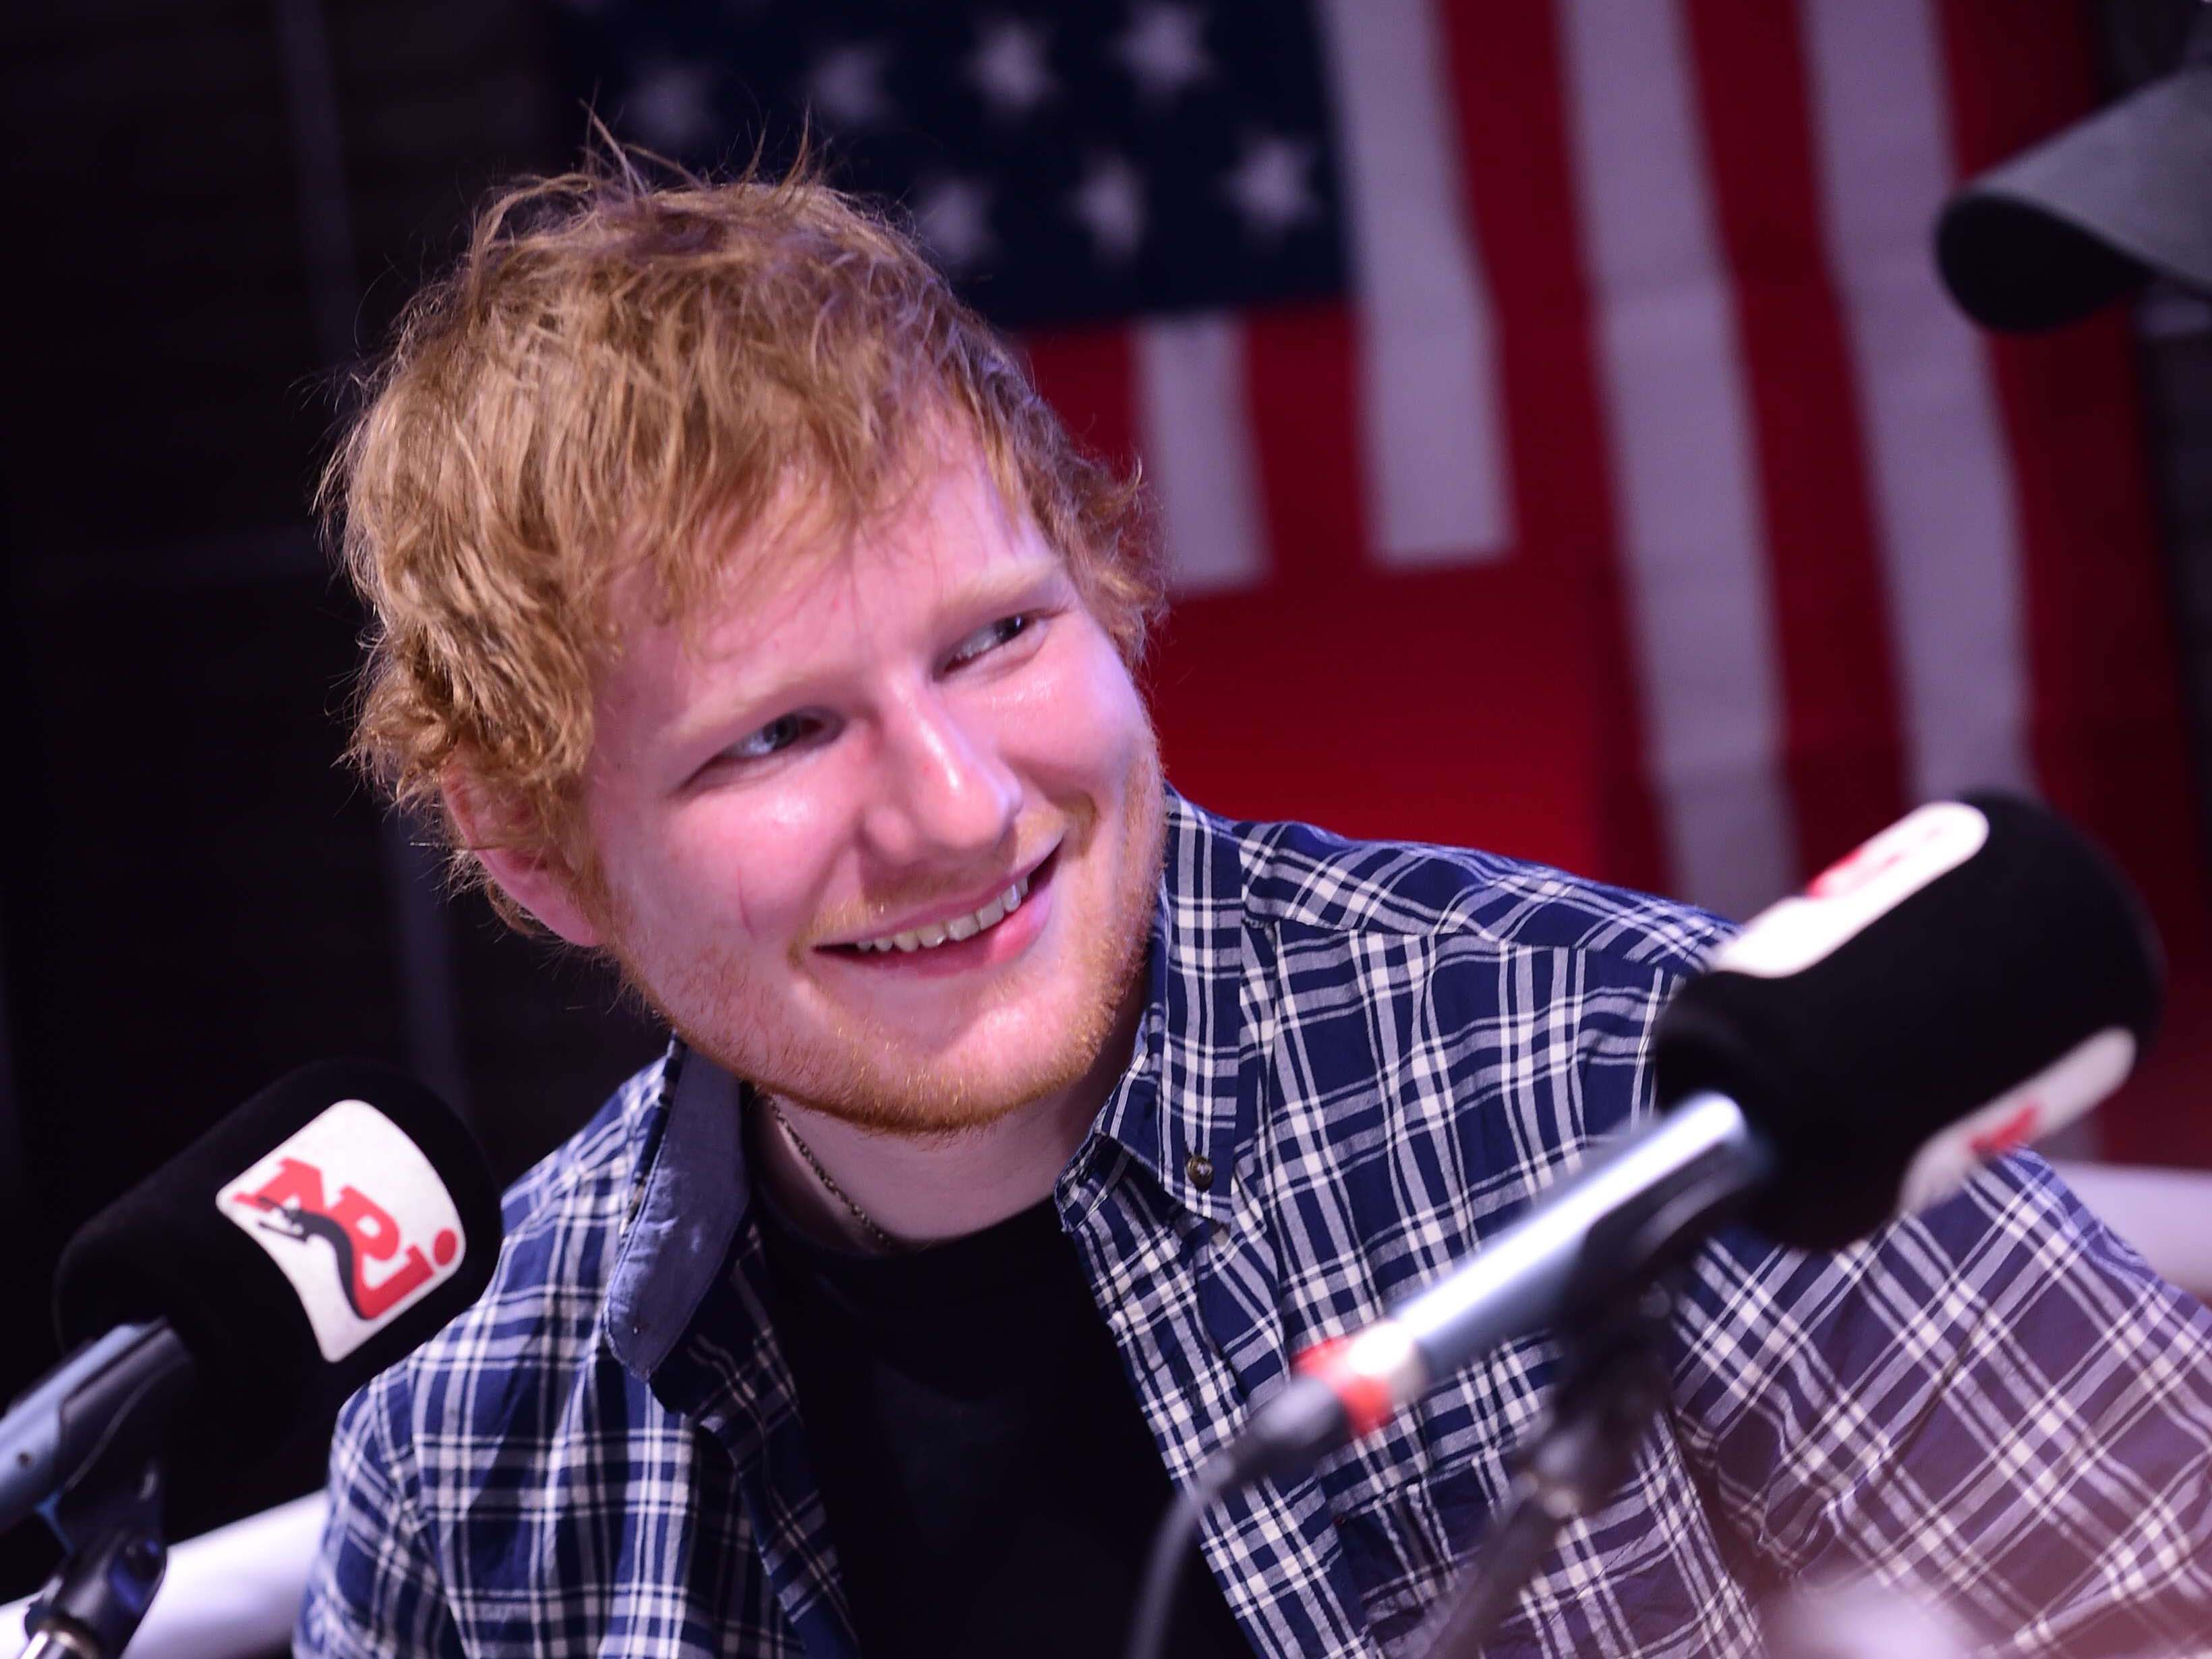 Ed Sheeran has just four friends after fame left him with 'crippling anxiety' 3